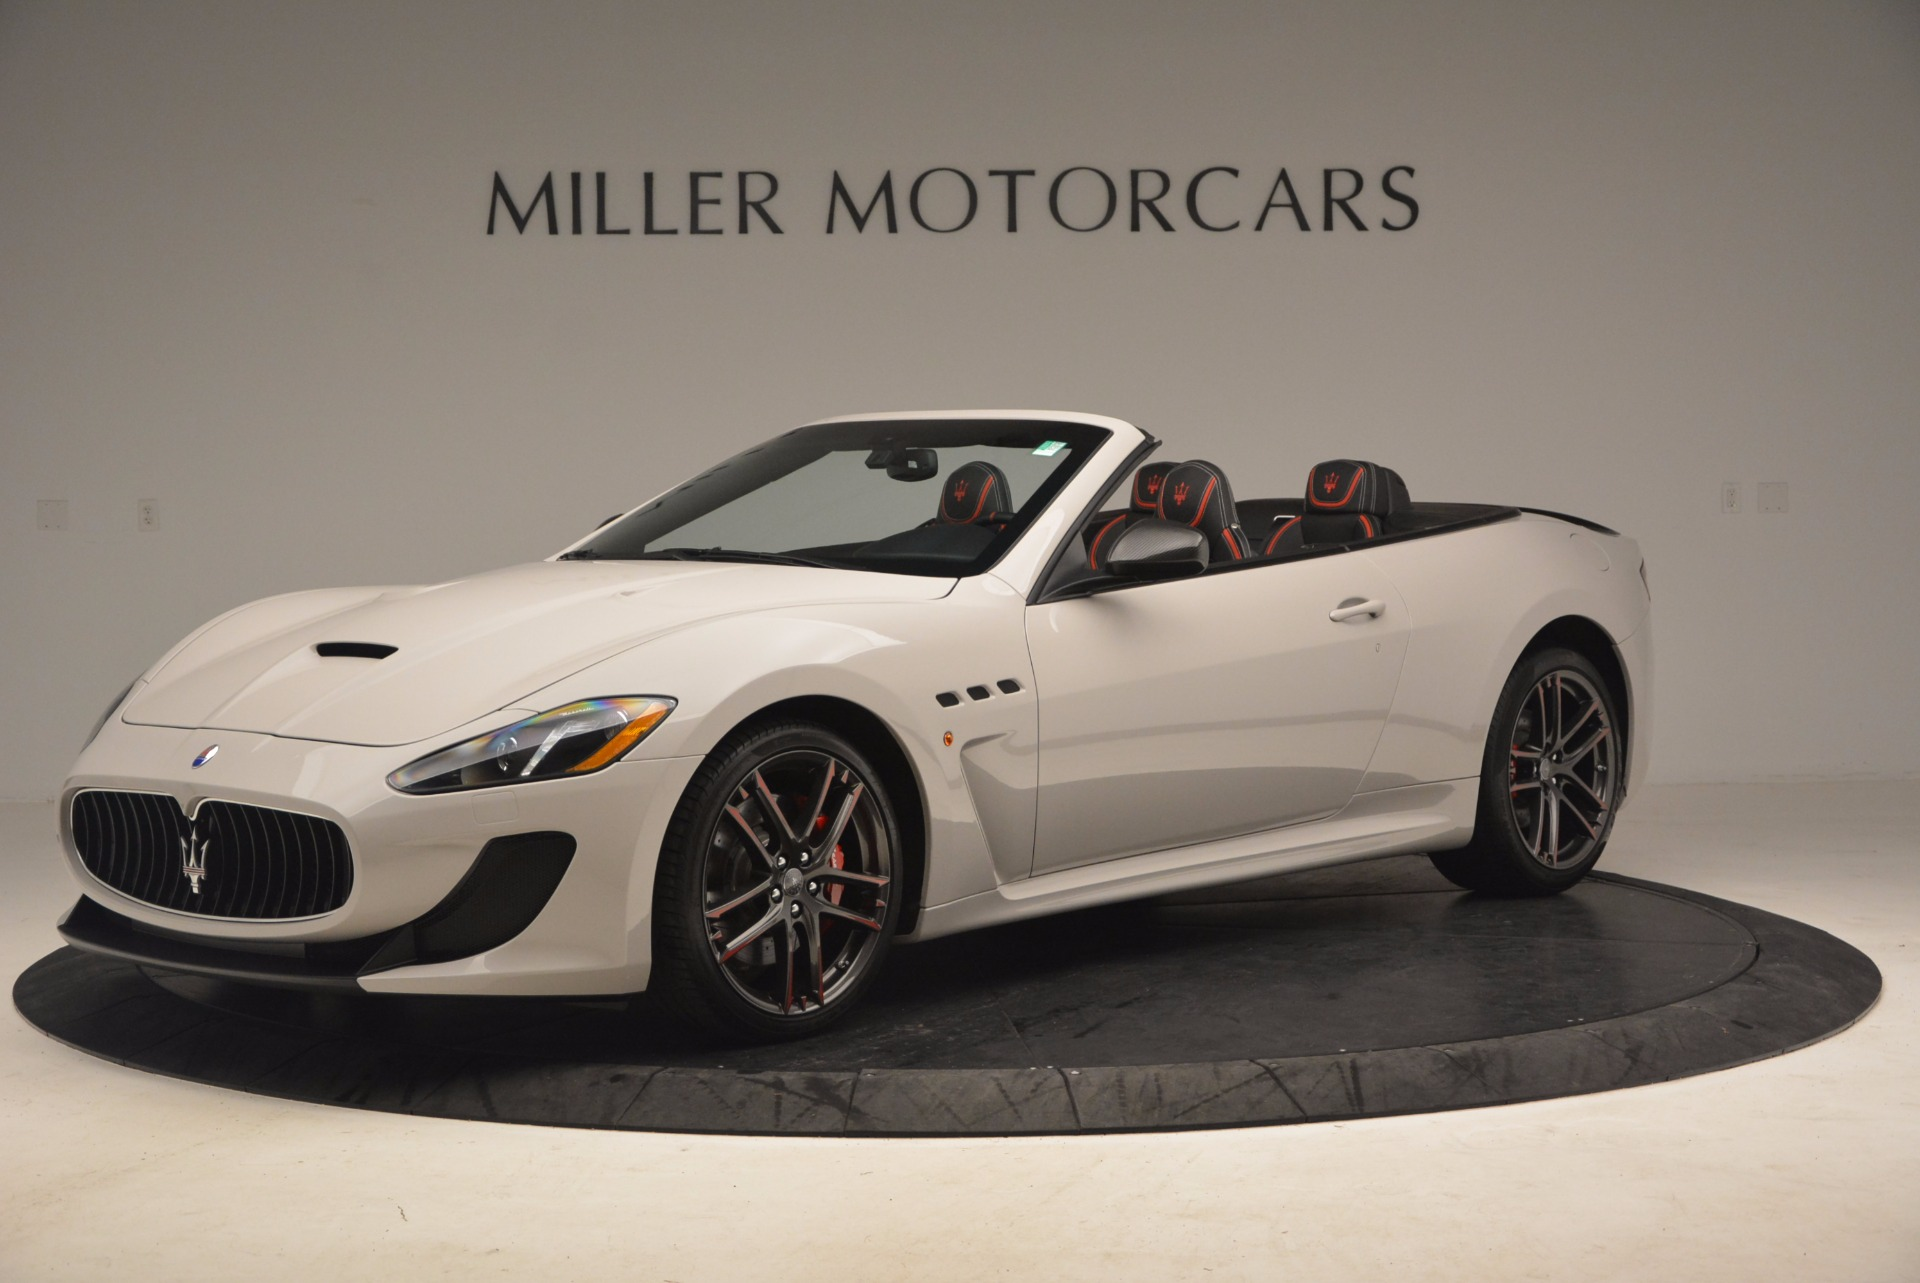 Used 2015 Maserati GranTurismo MC Centennial For Sale In Westport, CT 1107_p2